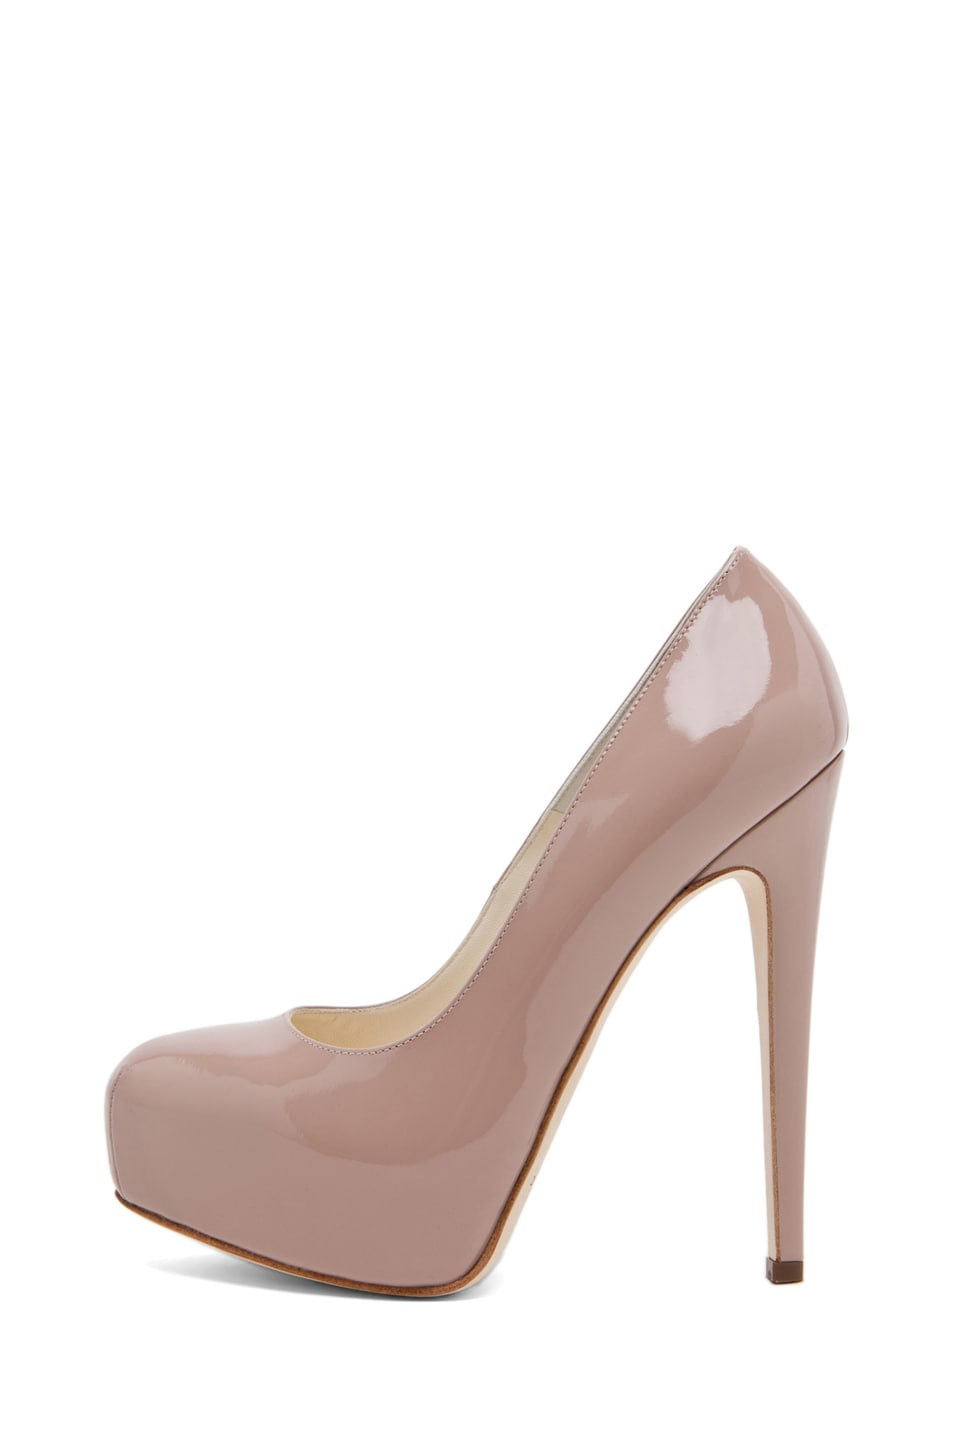 Image 1 of Brian Atwood Maniac Pump in Cappuccino Nude